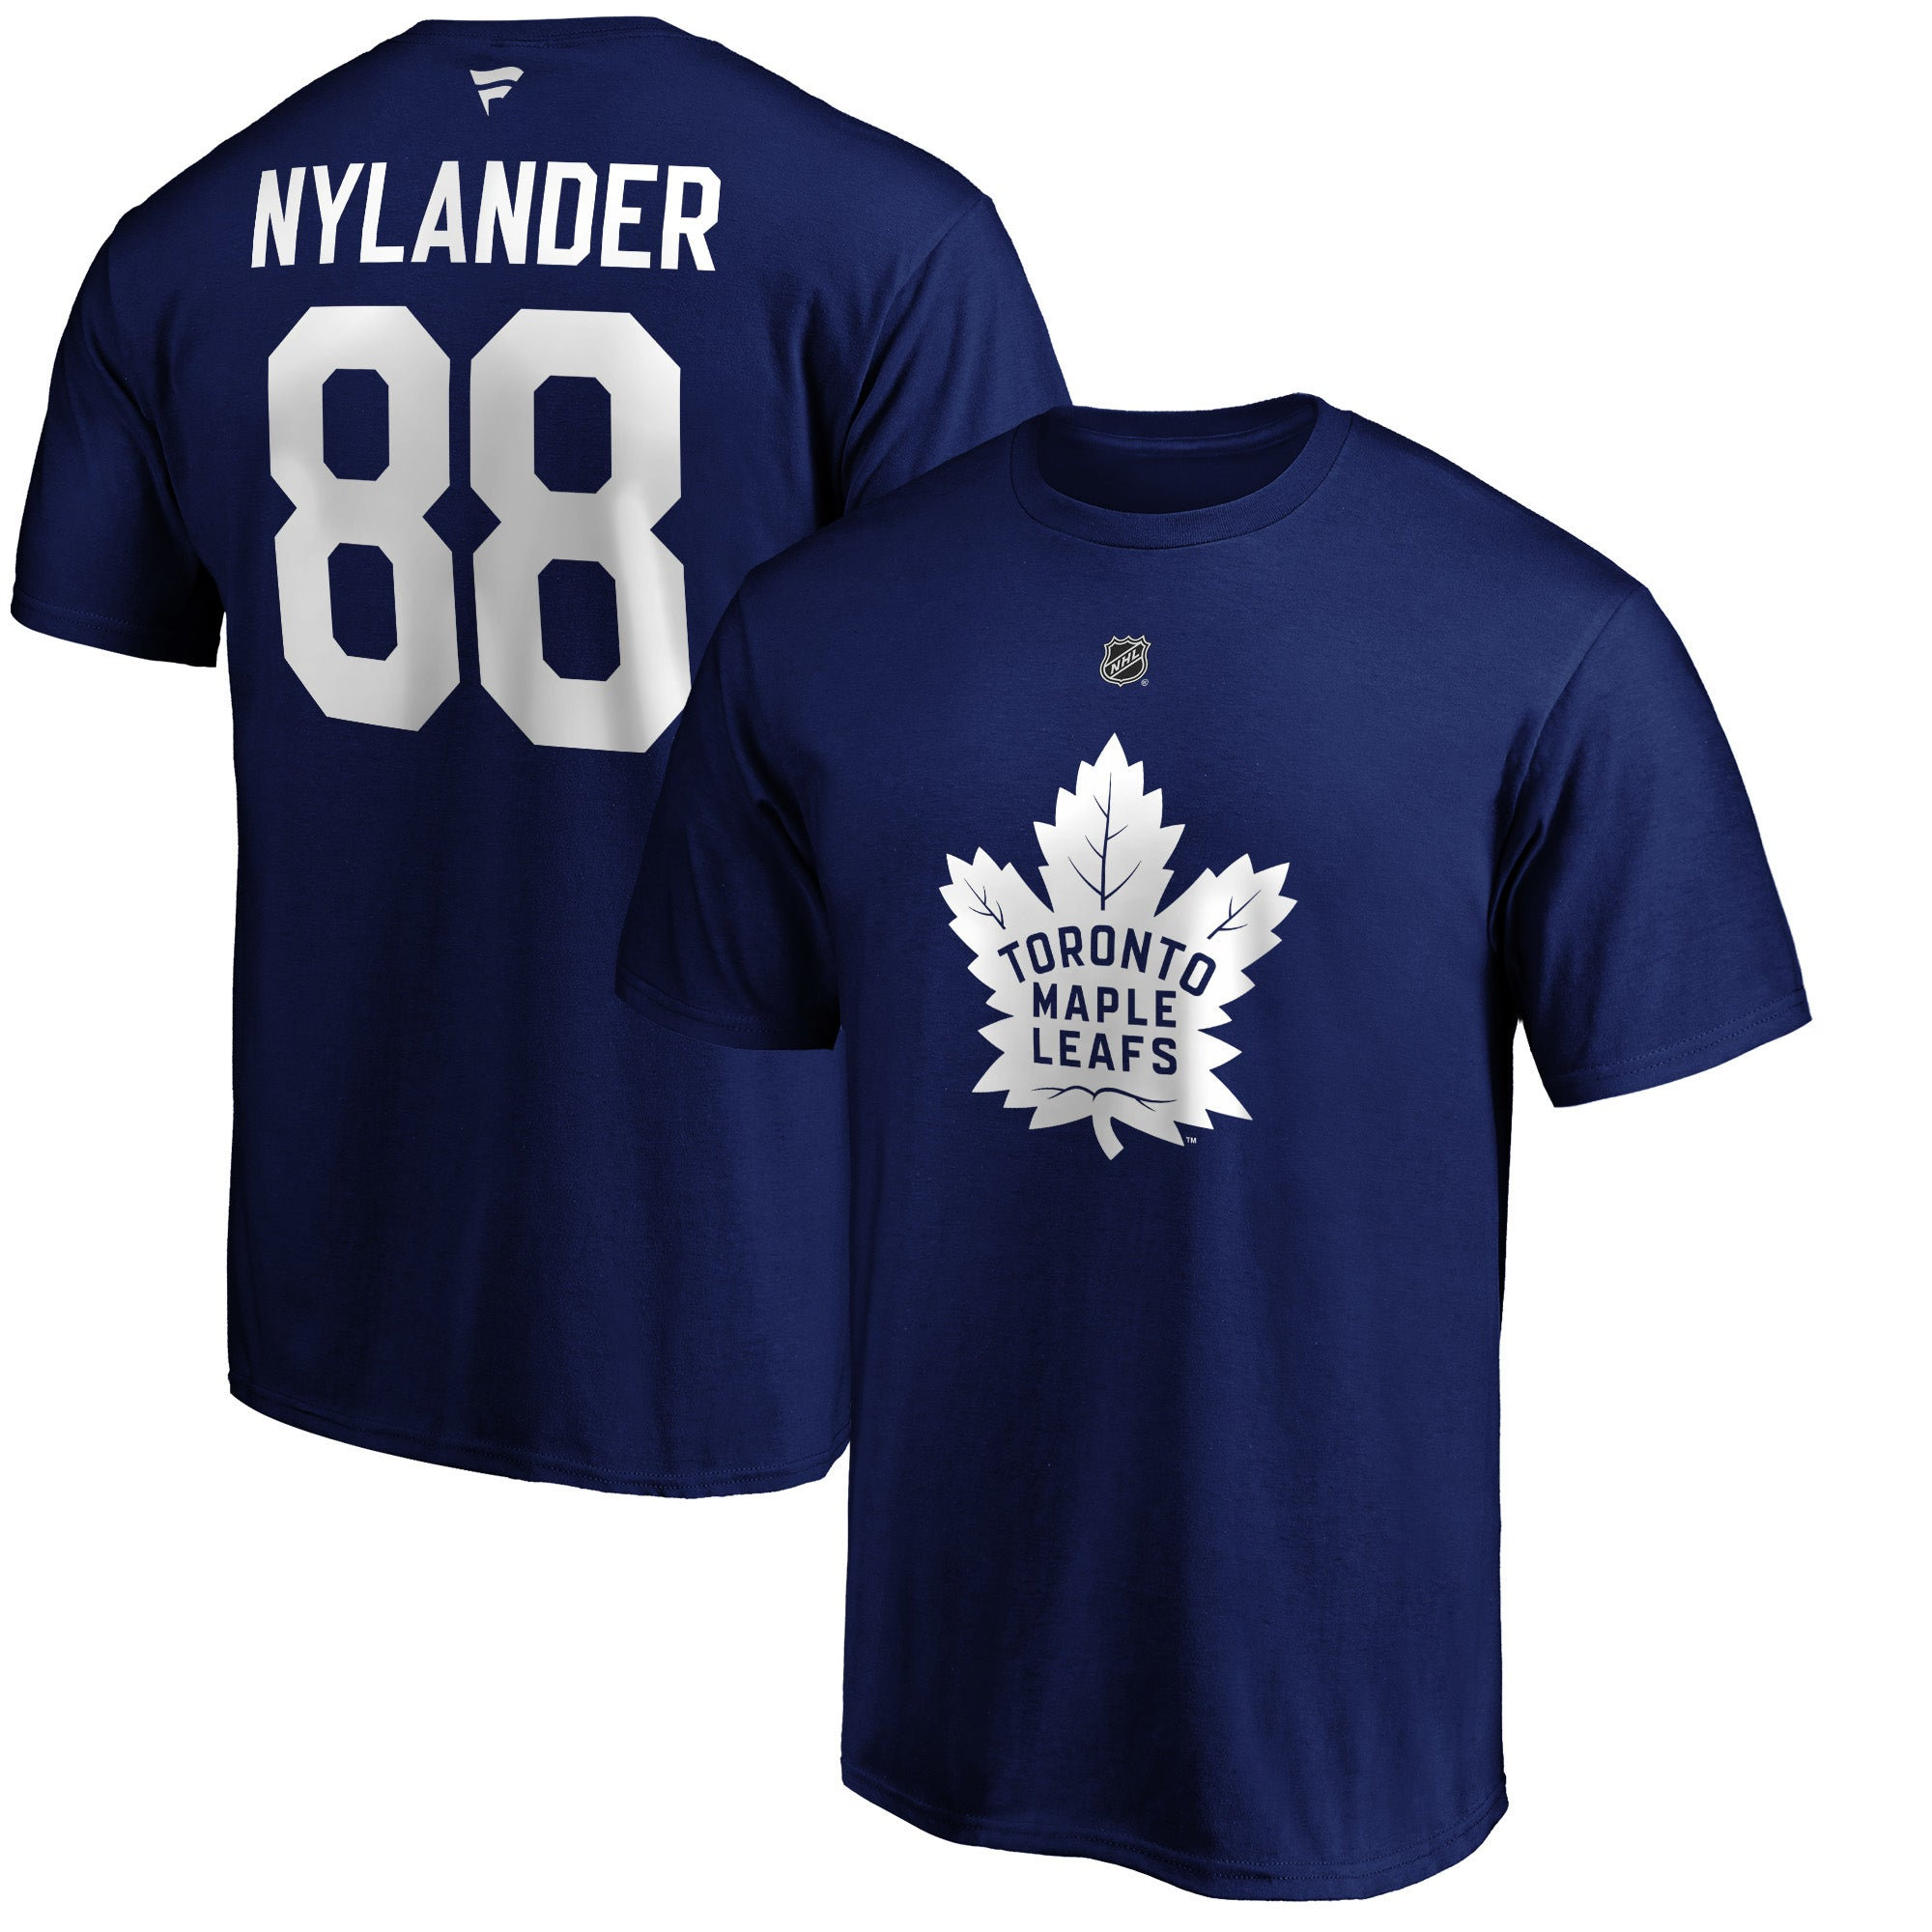 Maple Leafs Fanatics Men's Nylander Player Tee